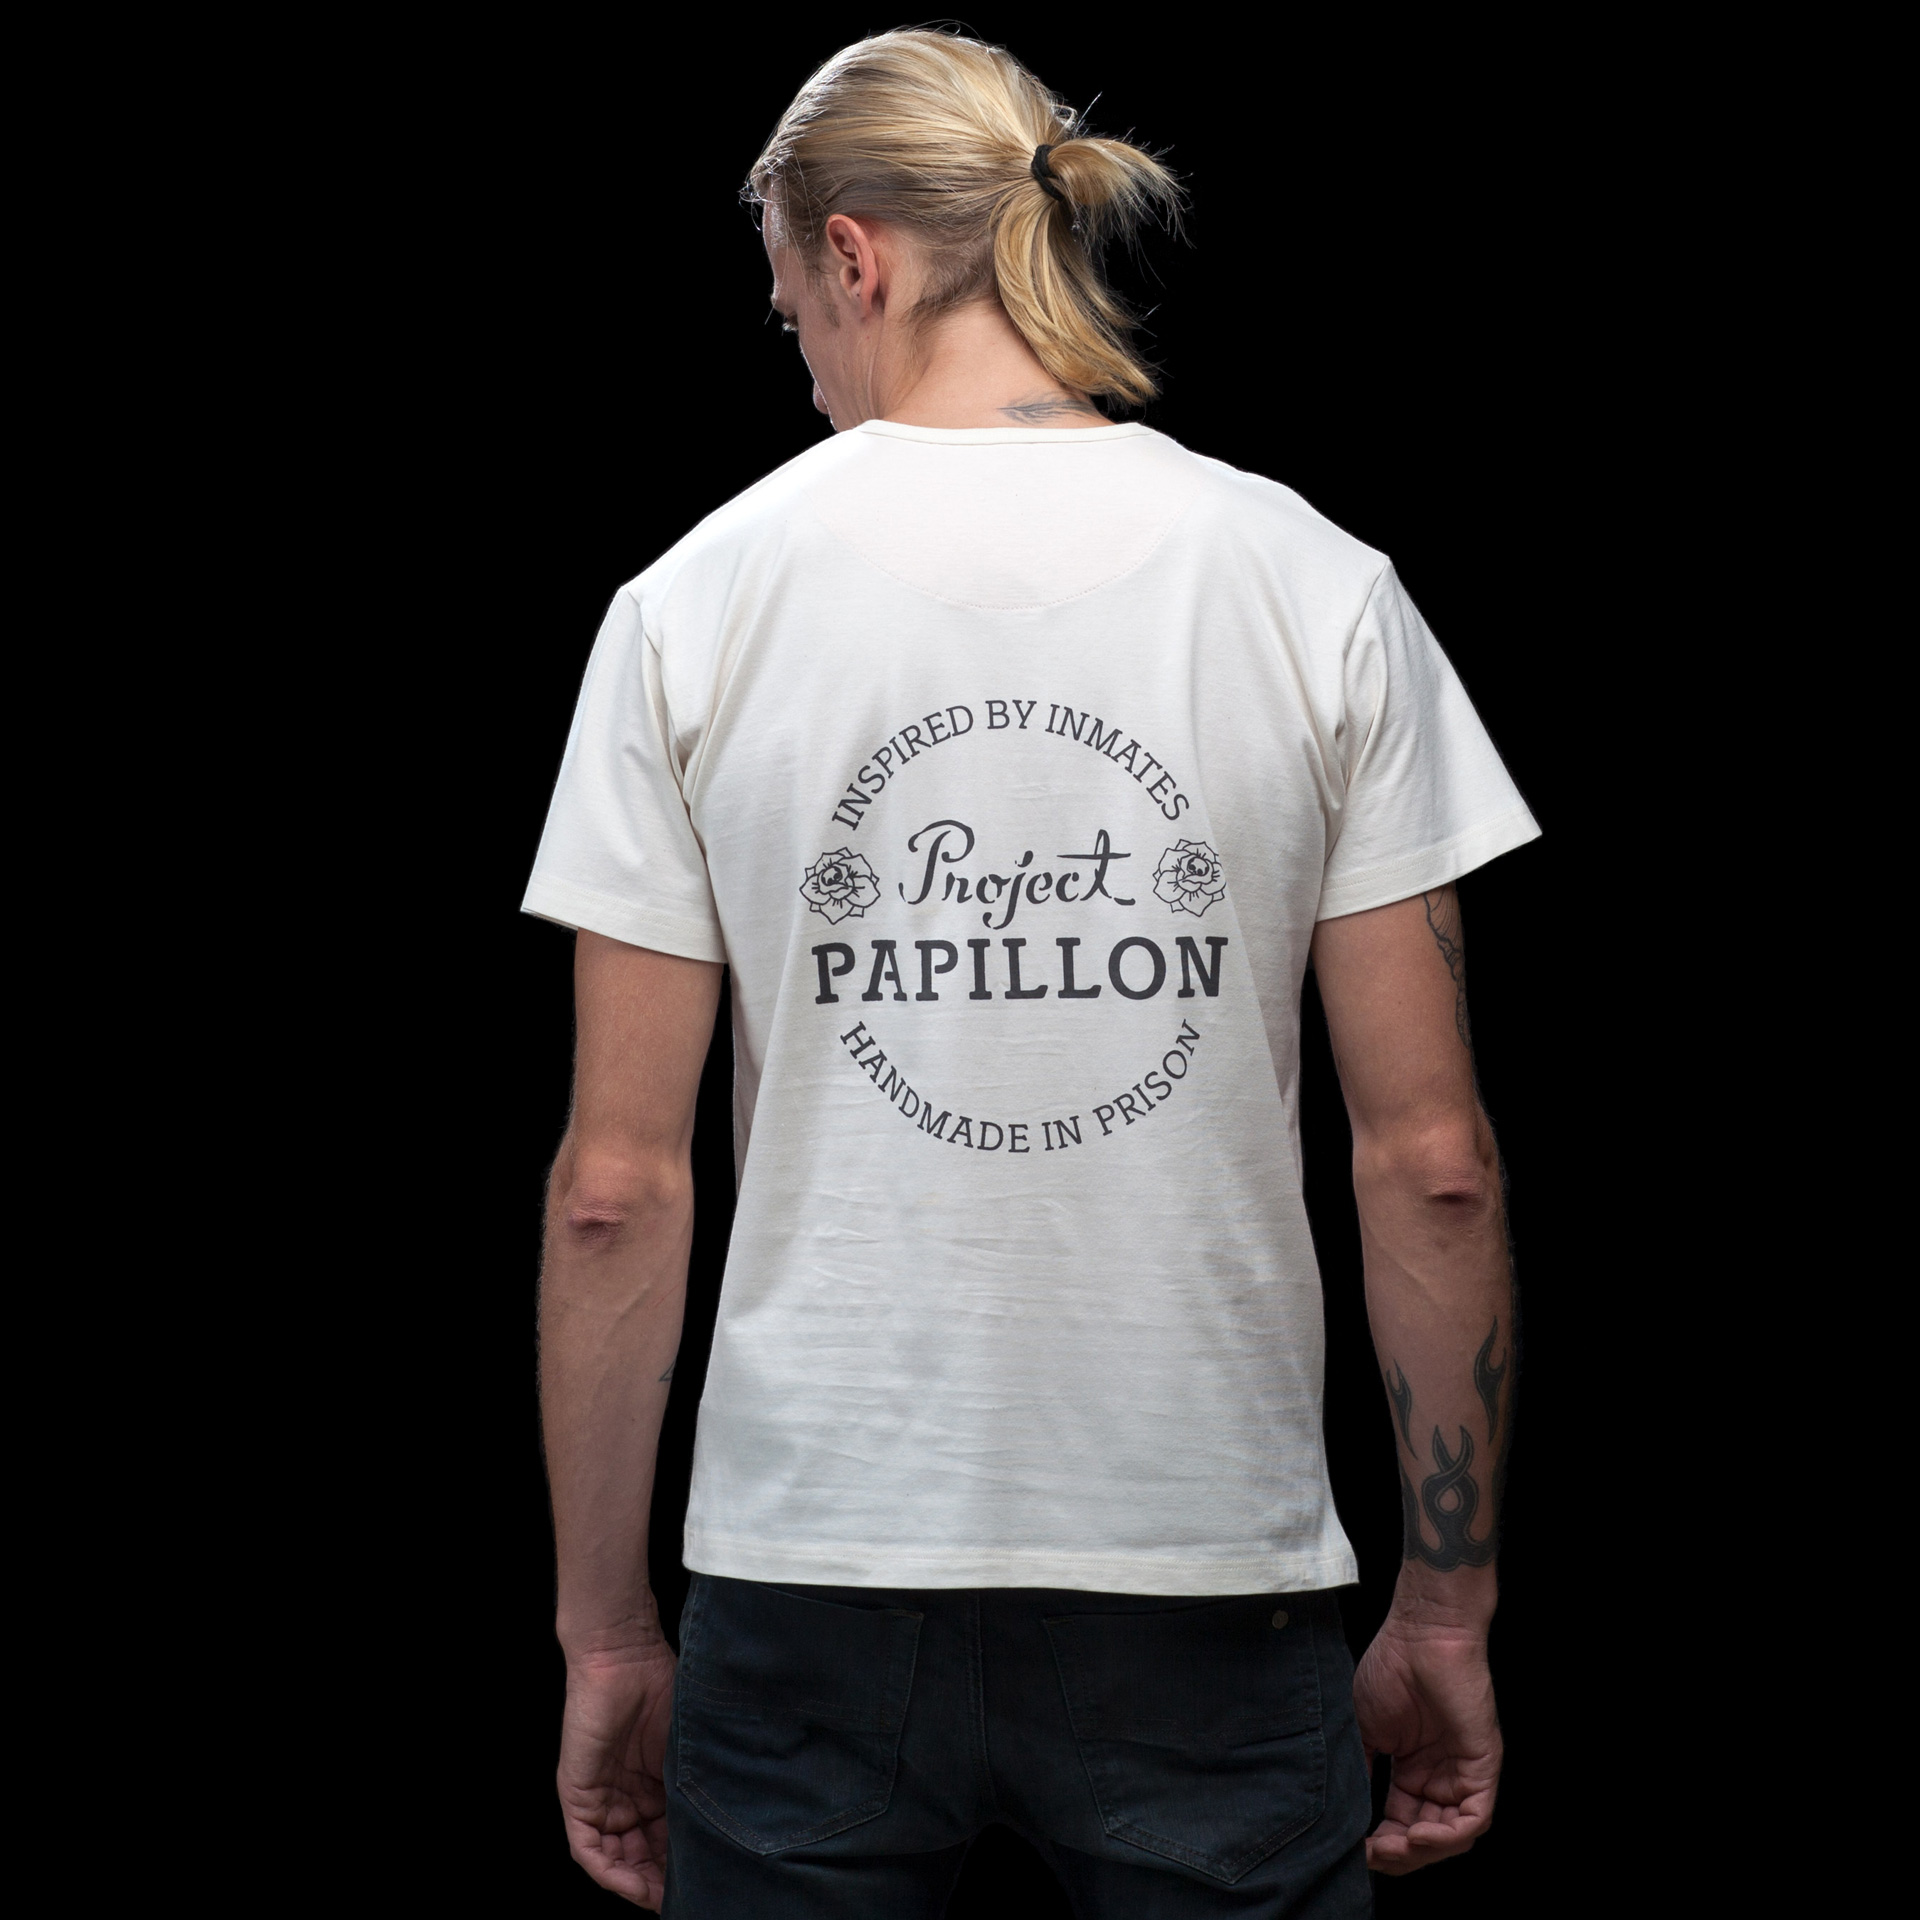 Project-papillon-t-shirt-white-back